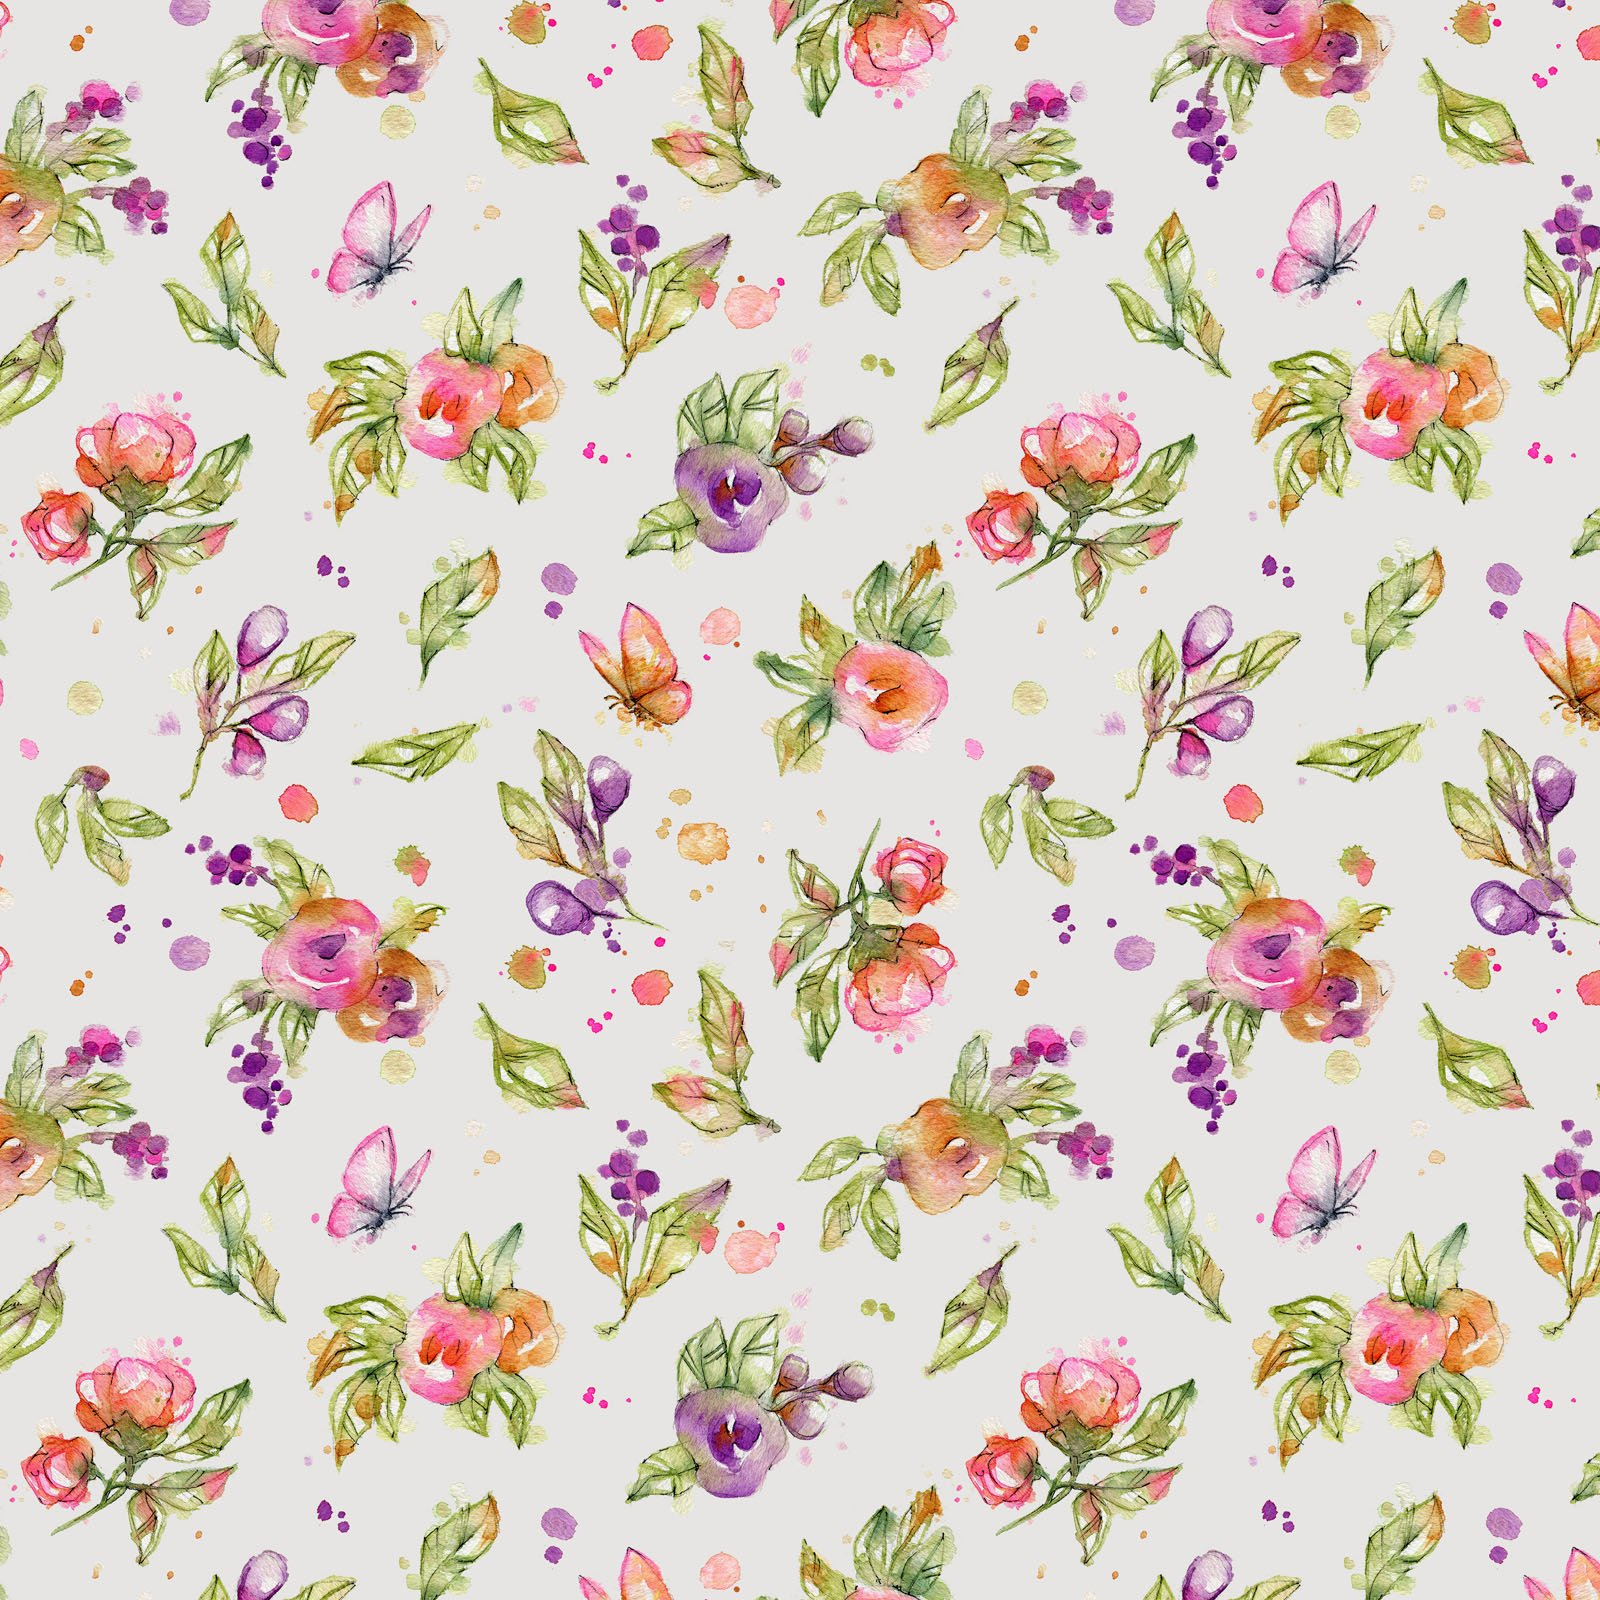 LIDW-4346 S - LITTLE DARLINGS WOODLAND BY SILLIER THAN SALLY FLOWERS GREY